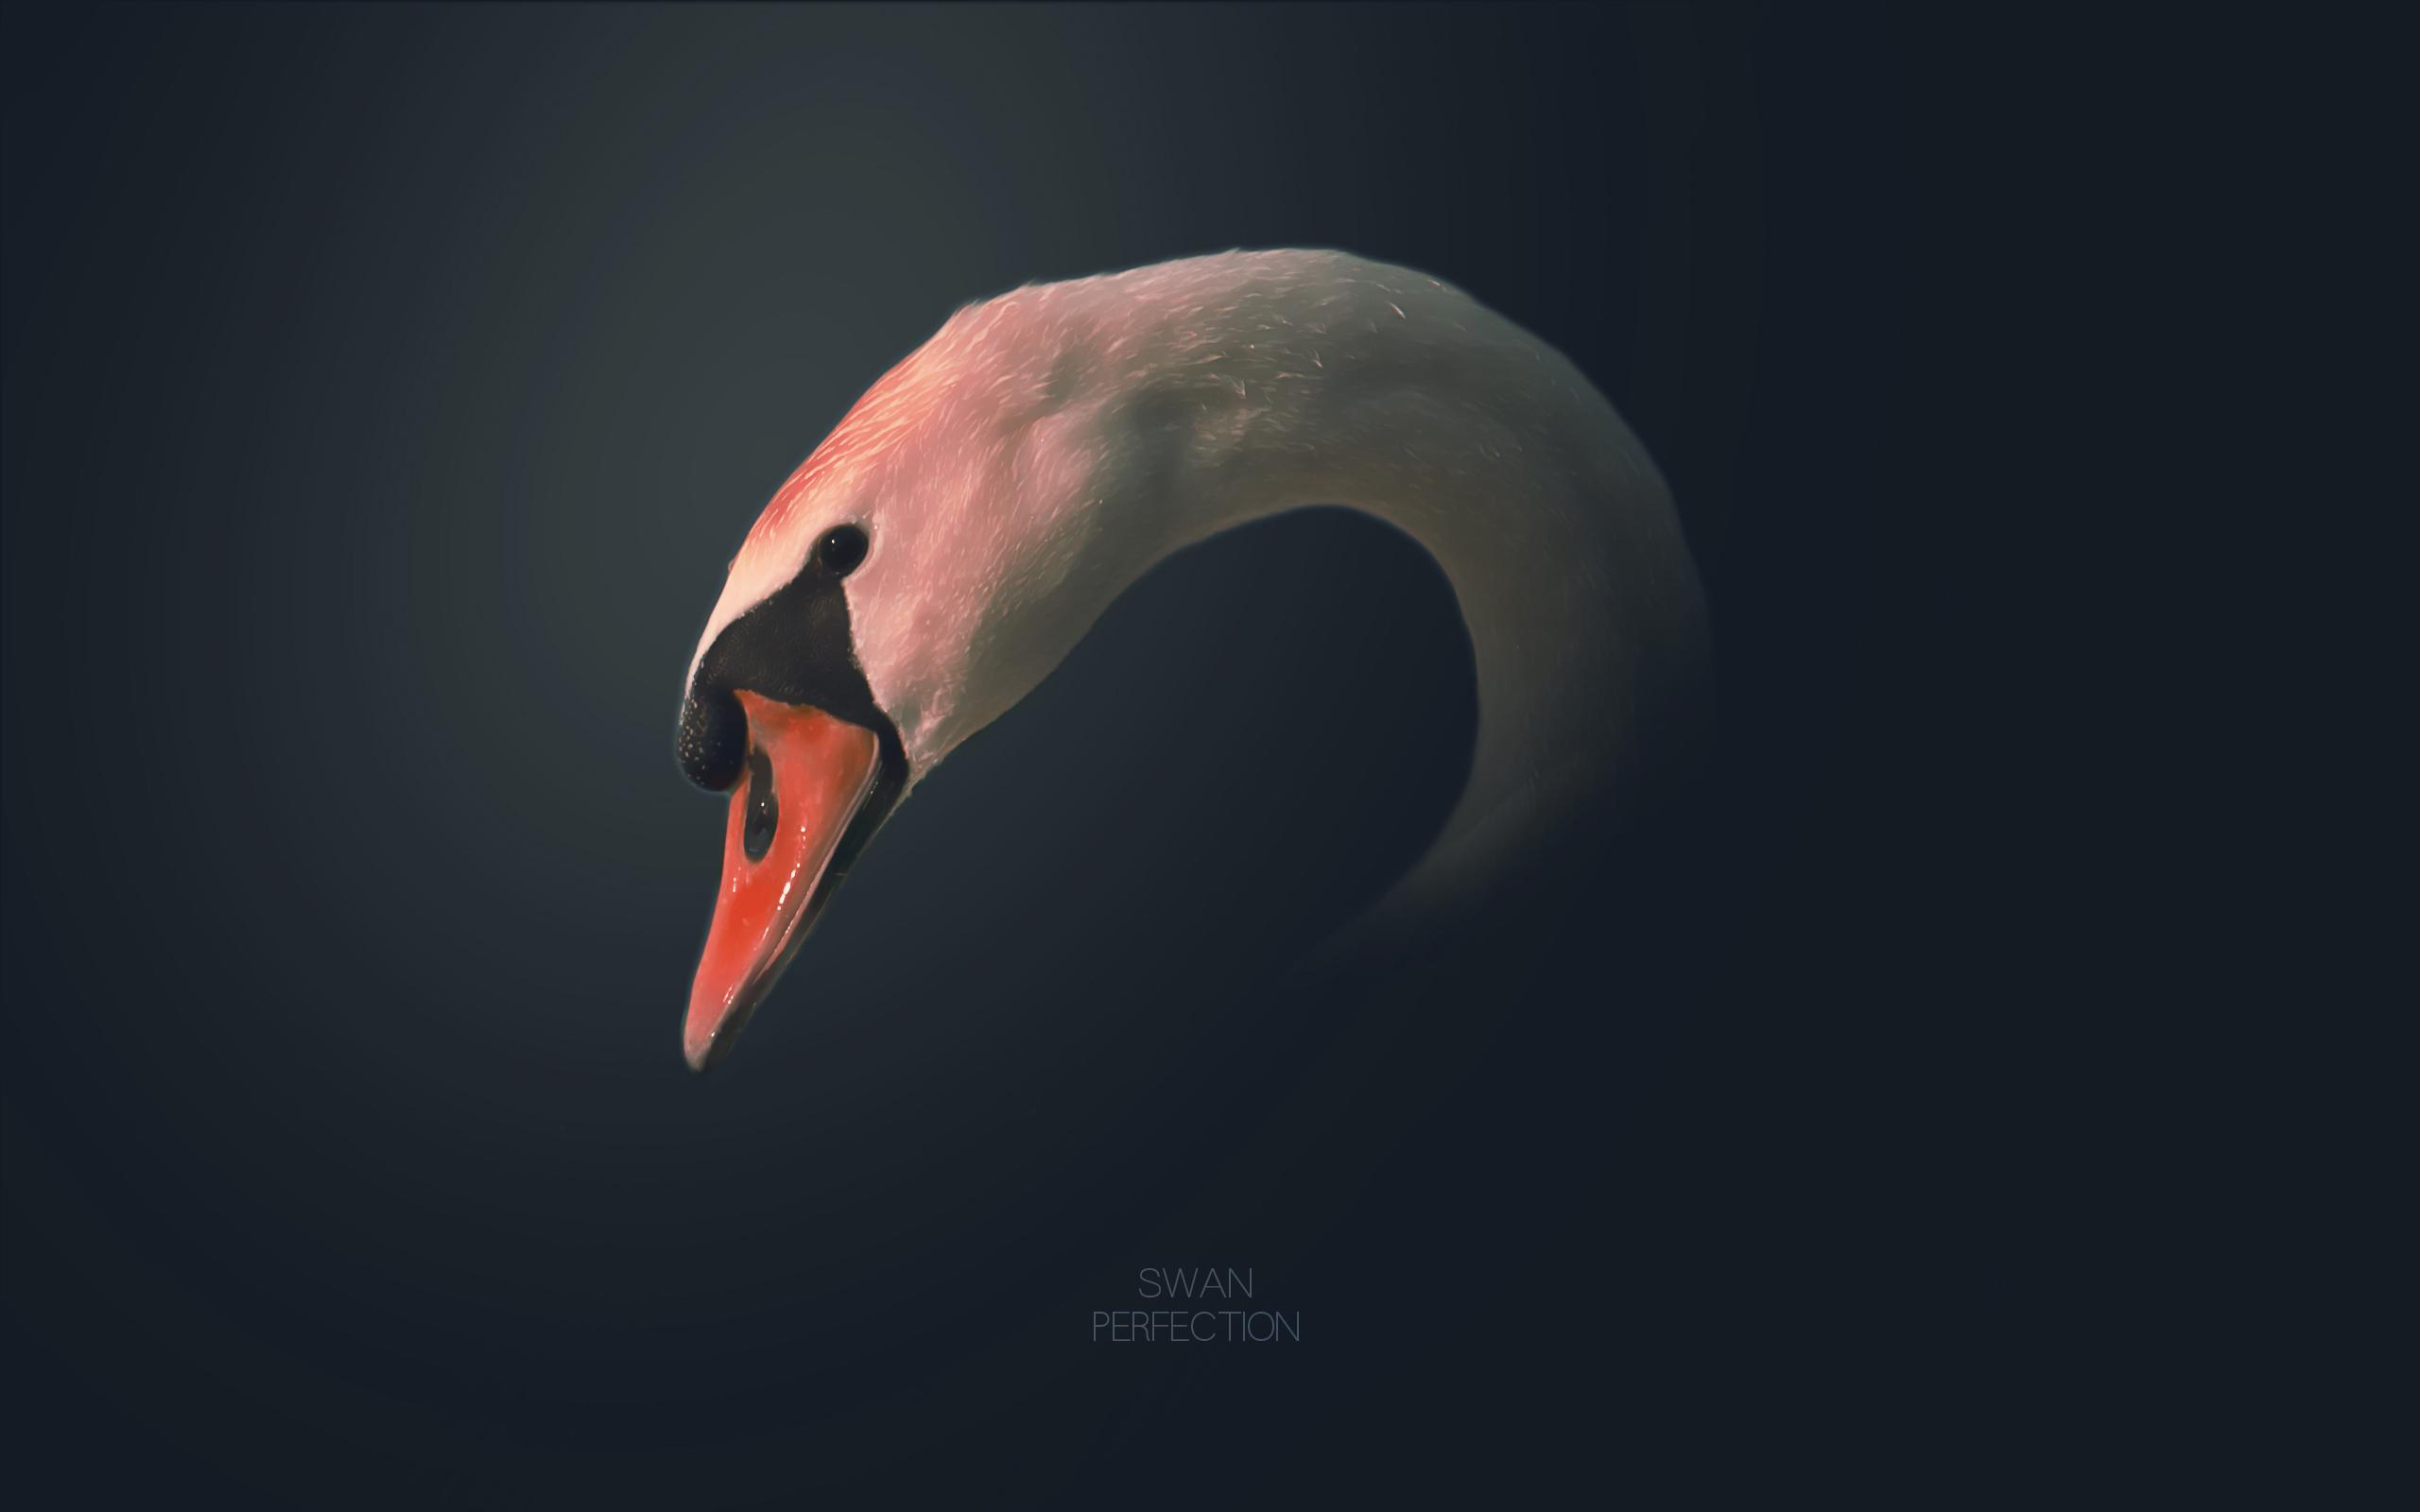 Swan perfaction by ~pleazart